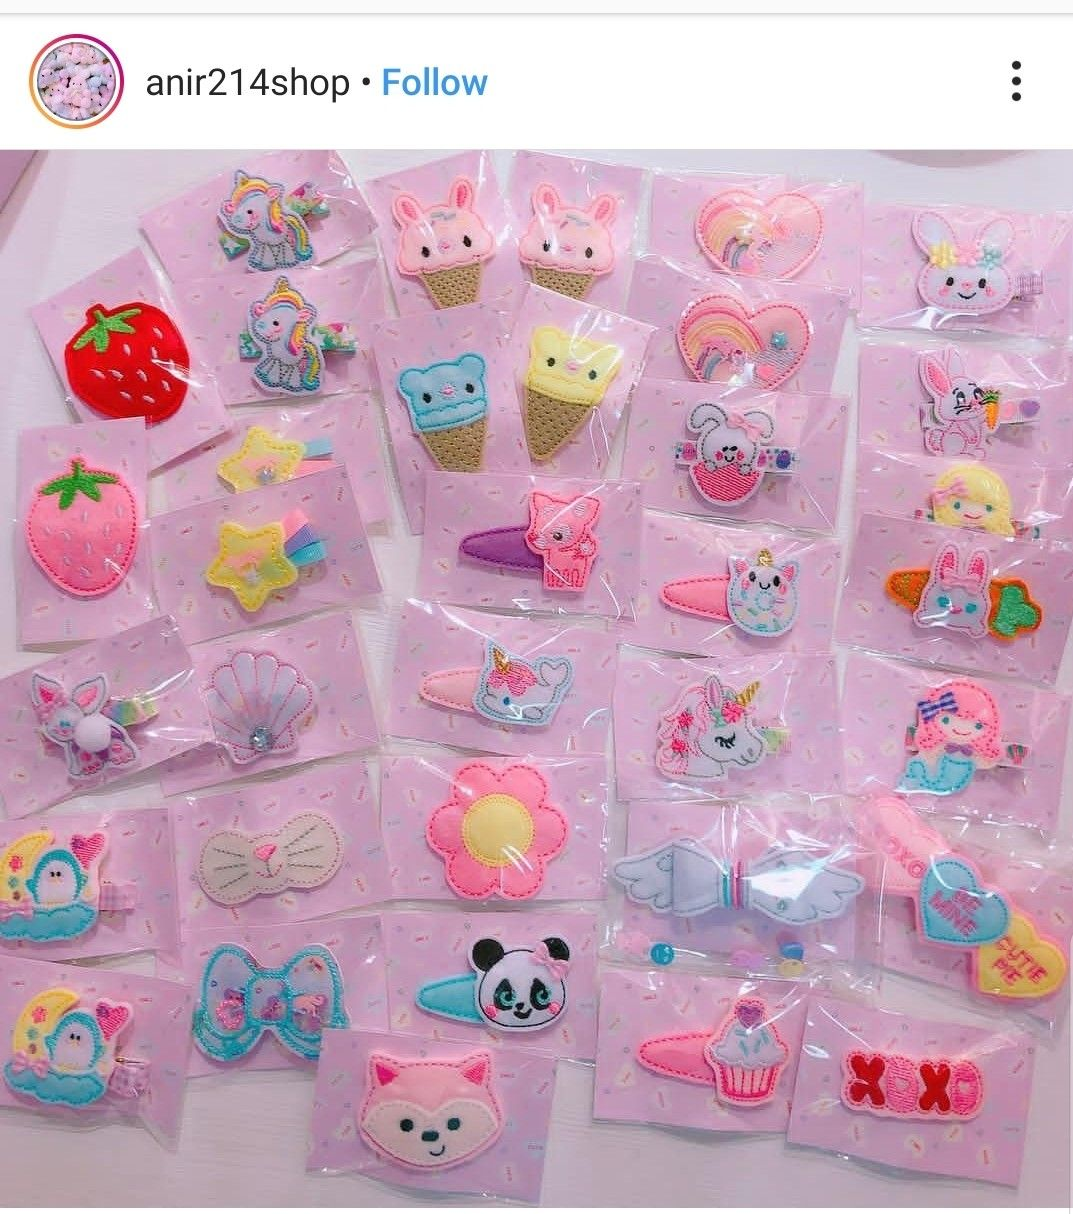 Hair Clips Kawaii Cute 90s Kawaii Hair Clips Kawaii Hairstyles Hair Clips